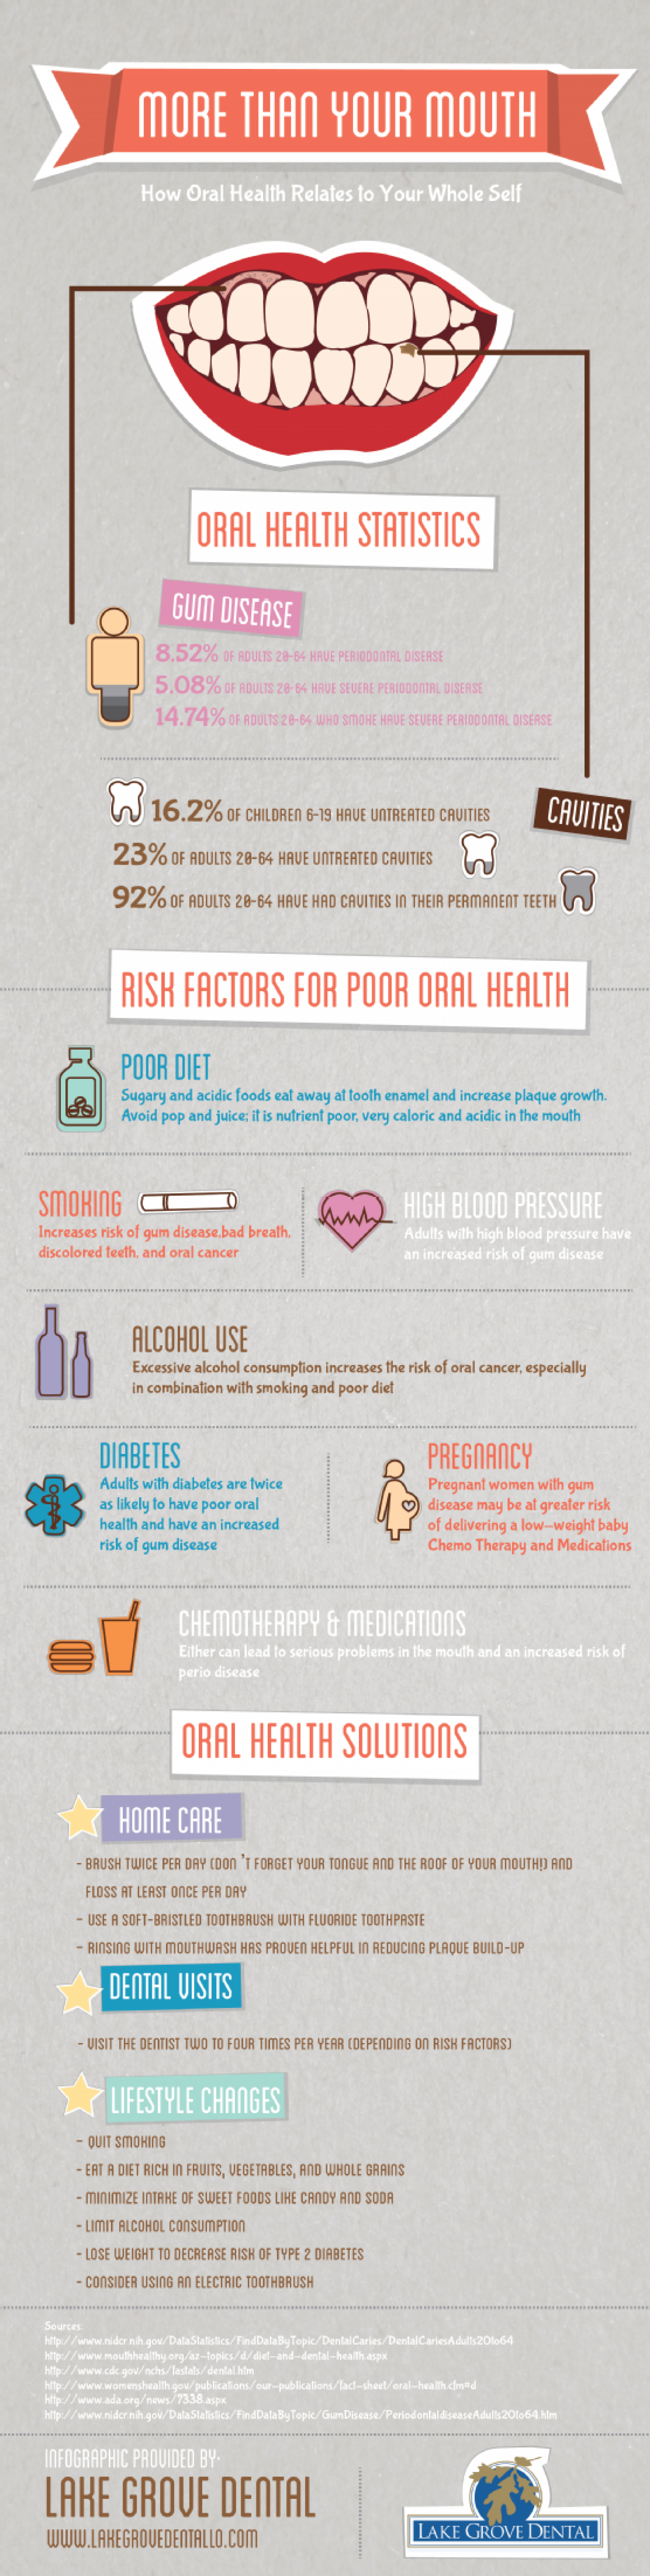 More Than Your Mouth: How Oral Health Relates to Your Whole Self Infographic